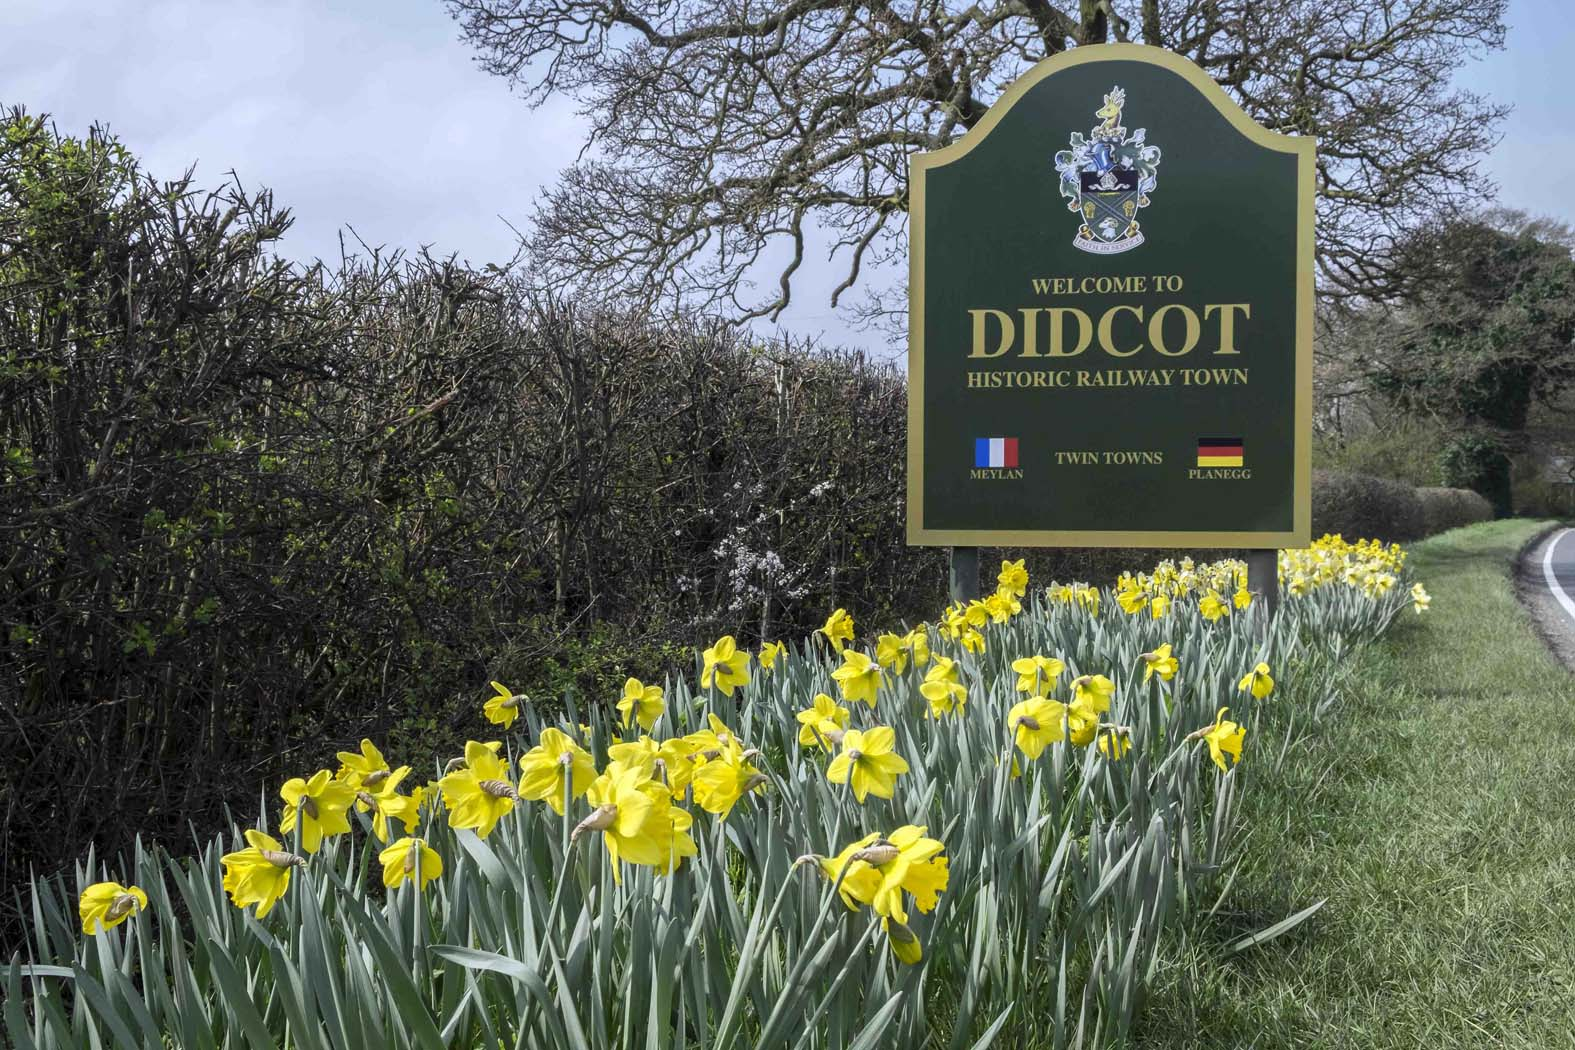 Welcome to Didcot